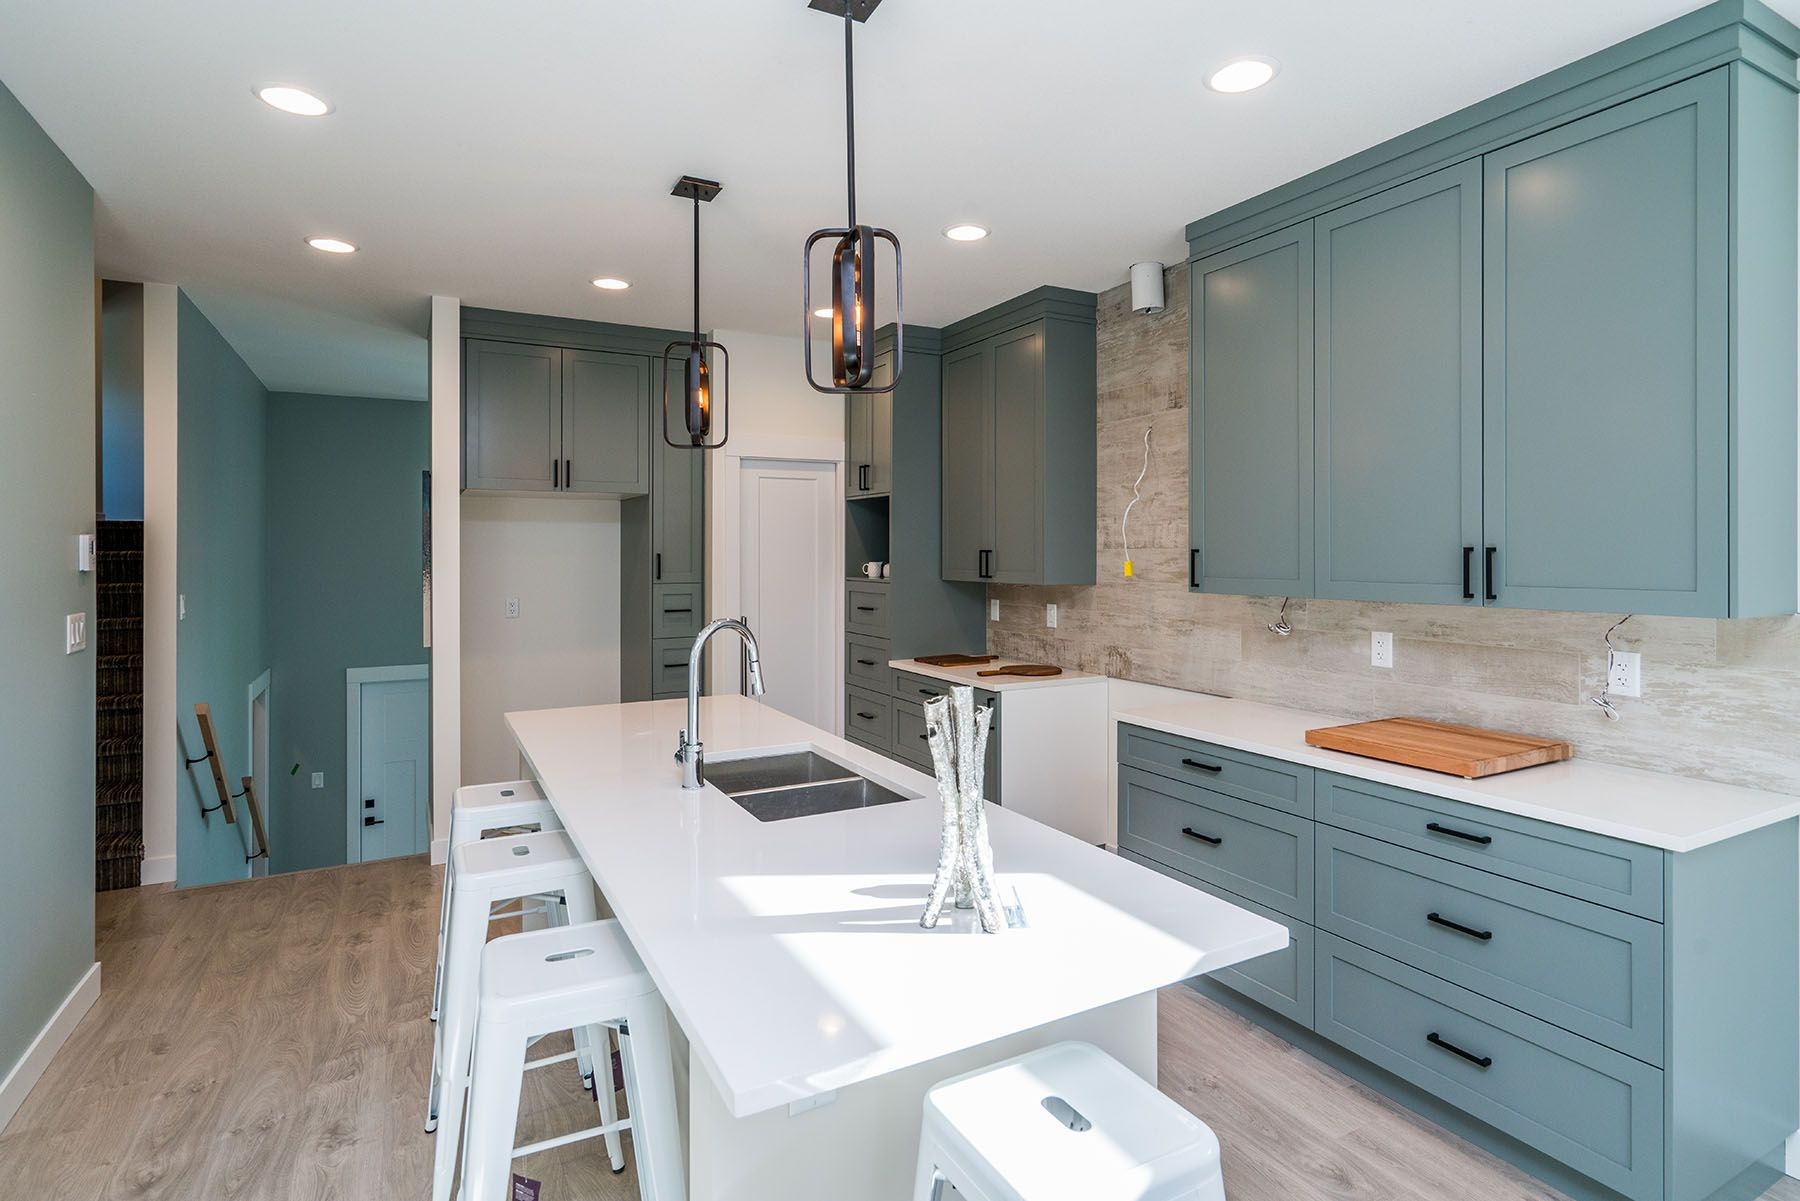 Join this cabinetry trend by making your island a ...